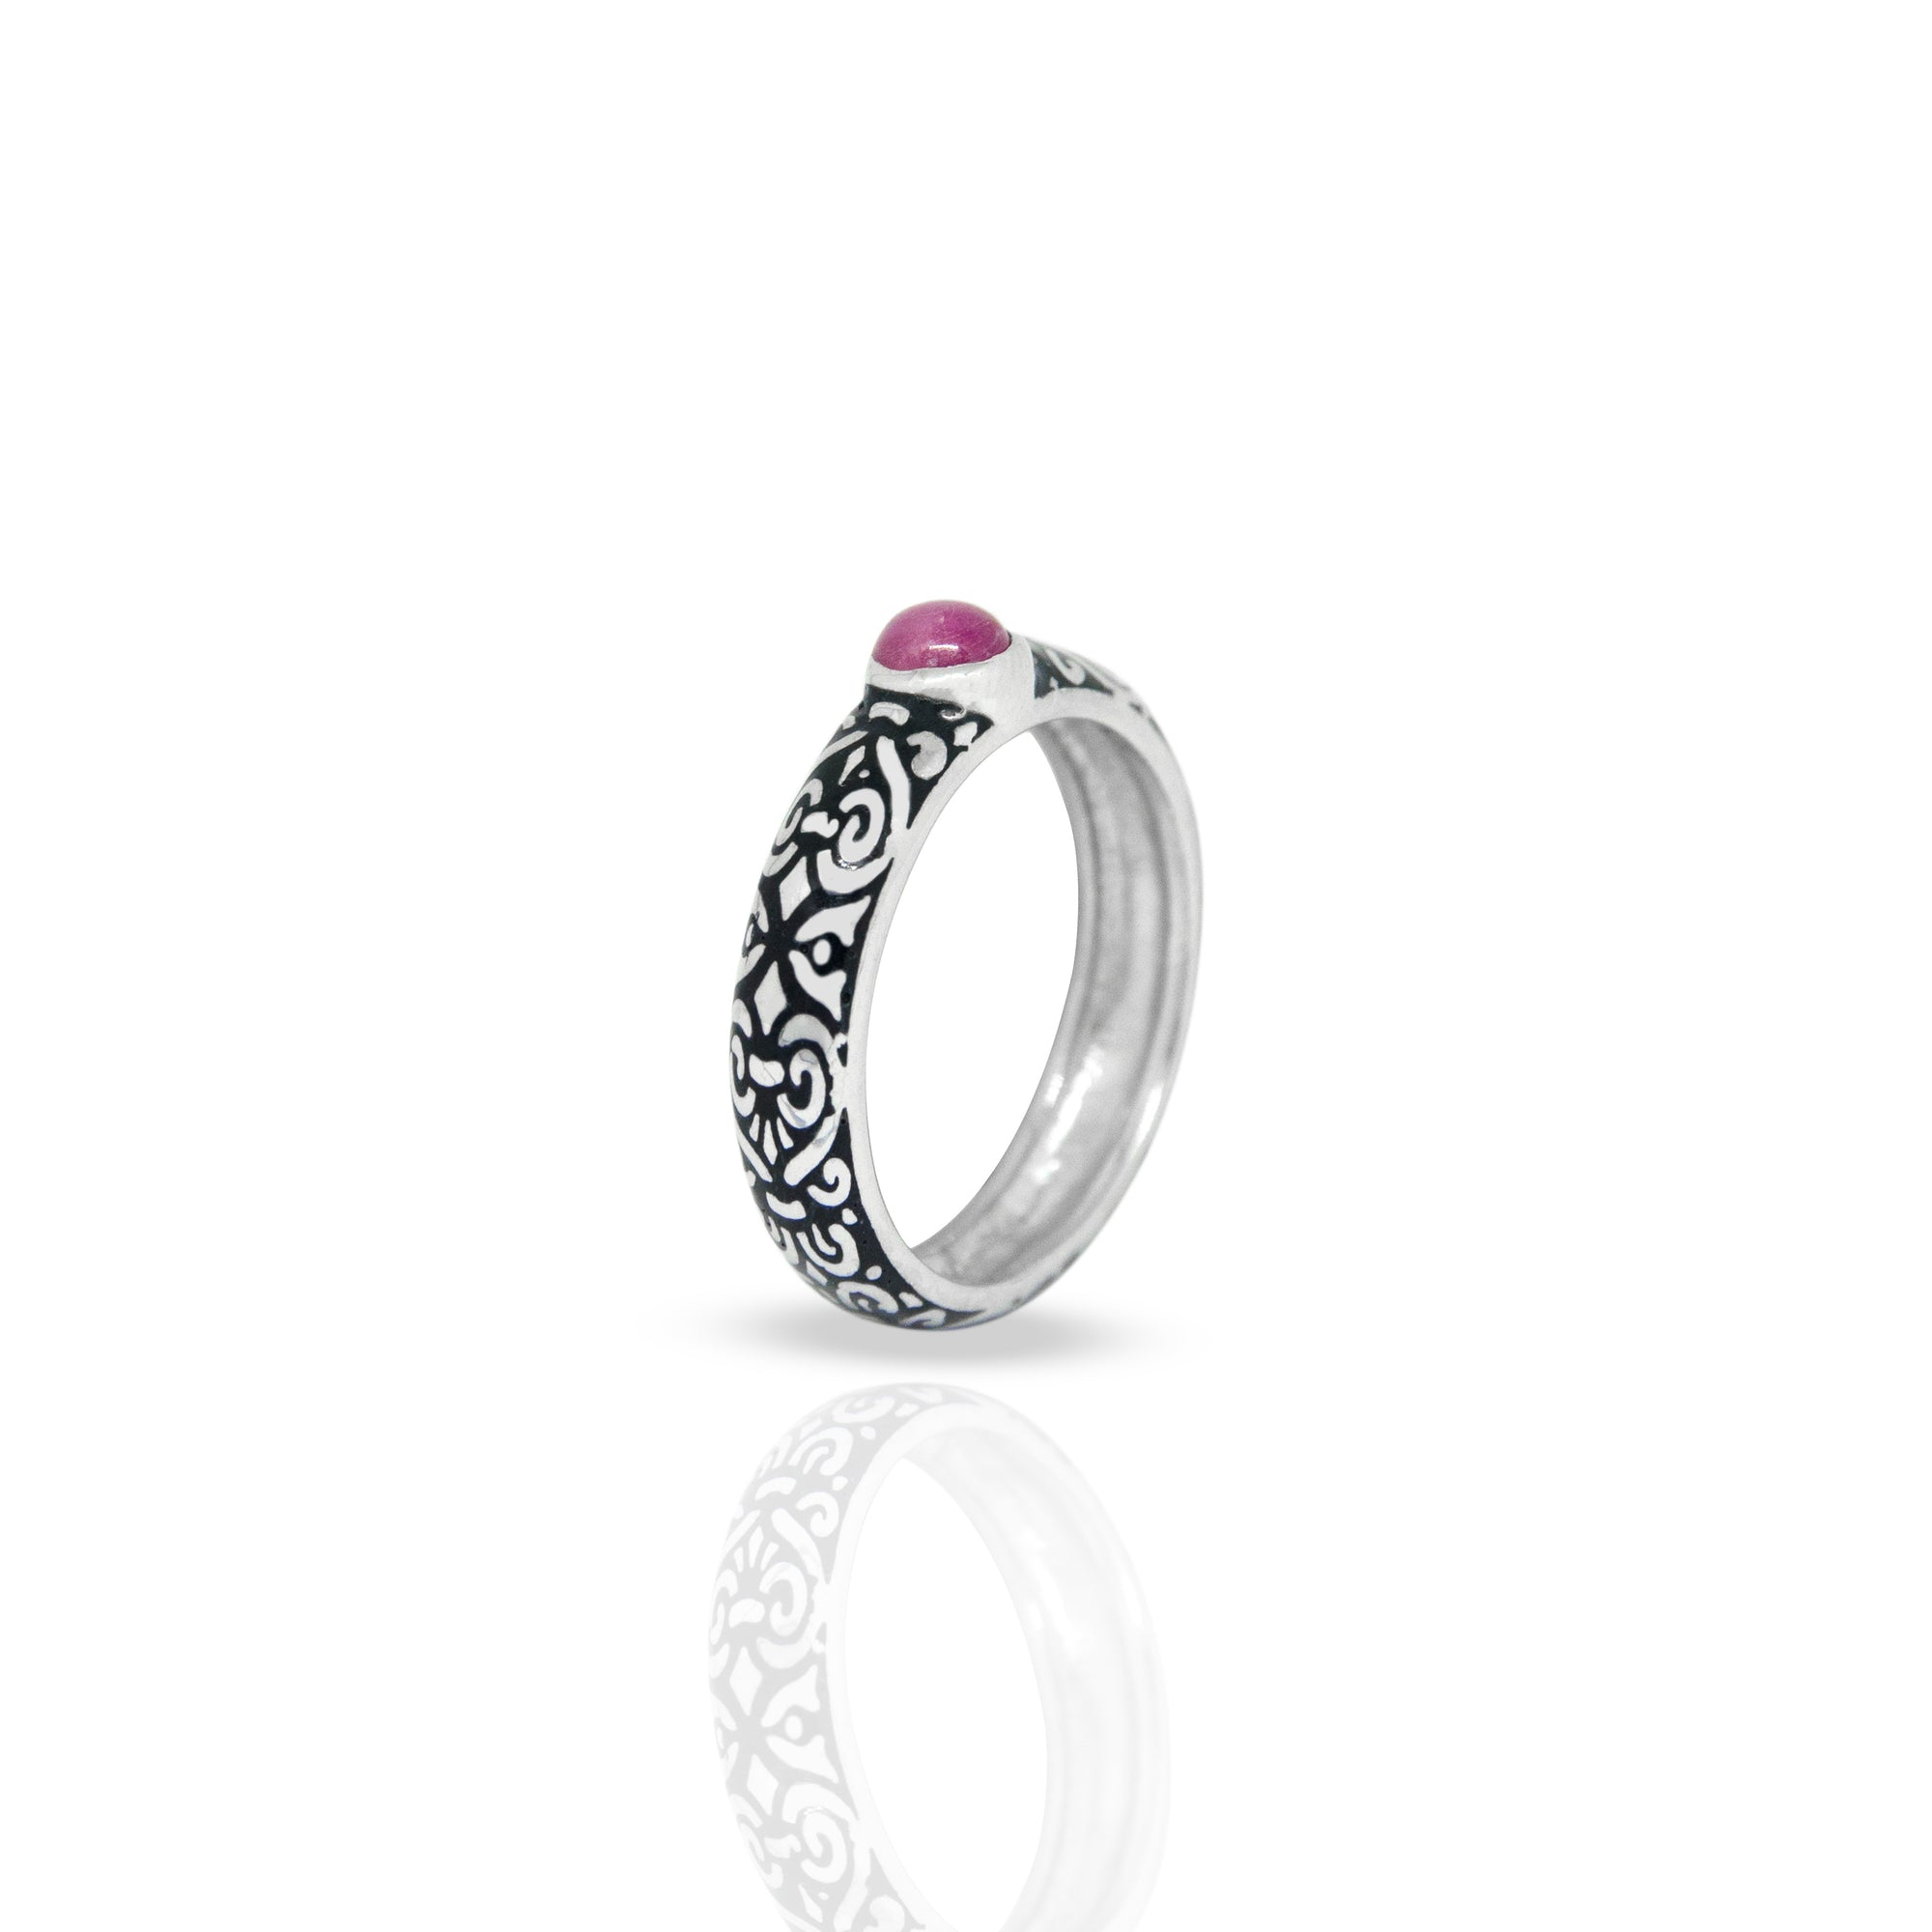 Outer Band Ring With Round Ruby 4 mm